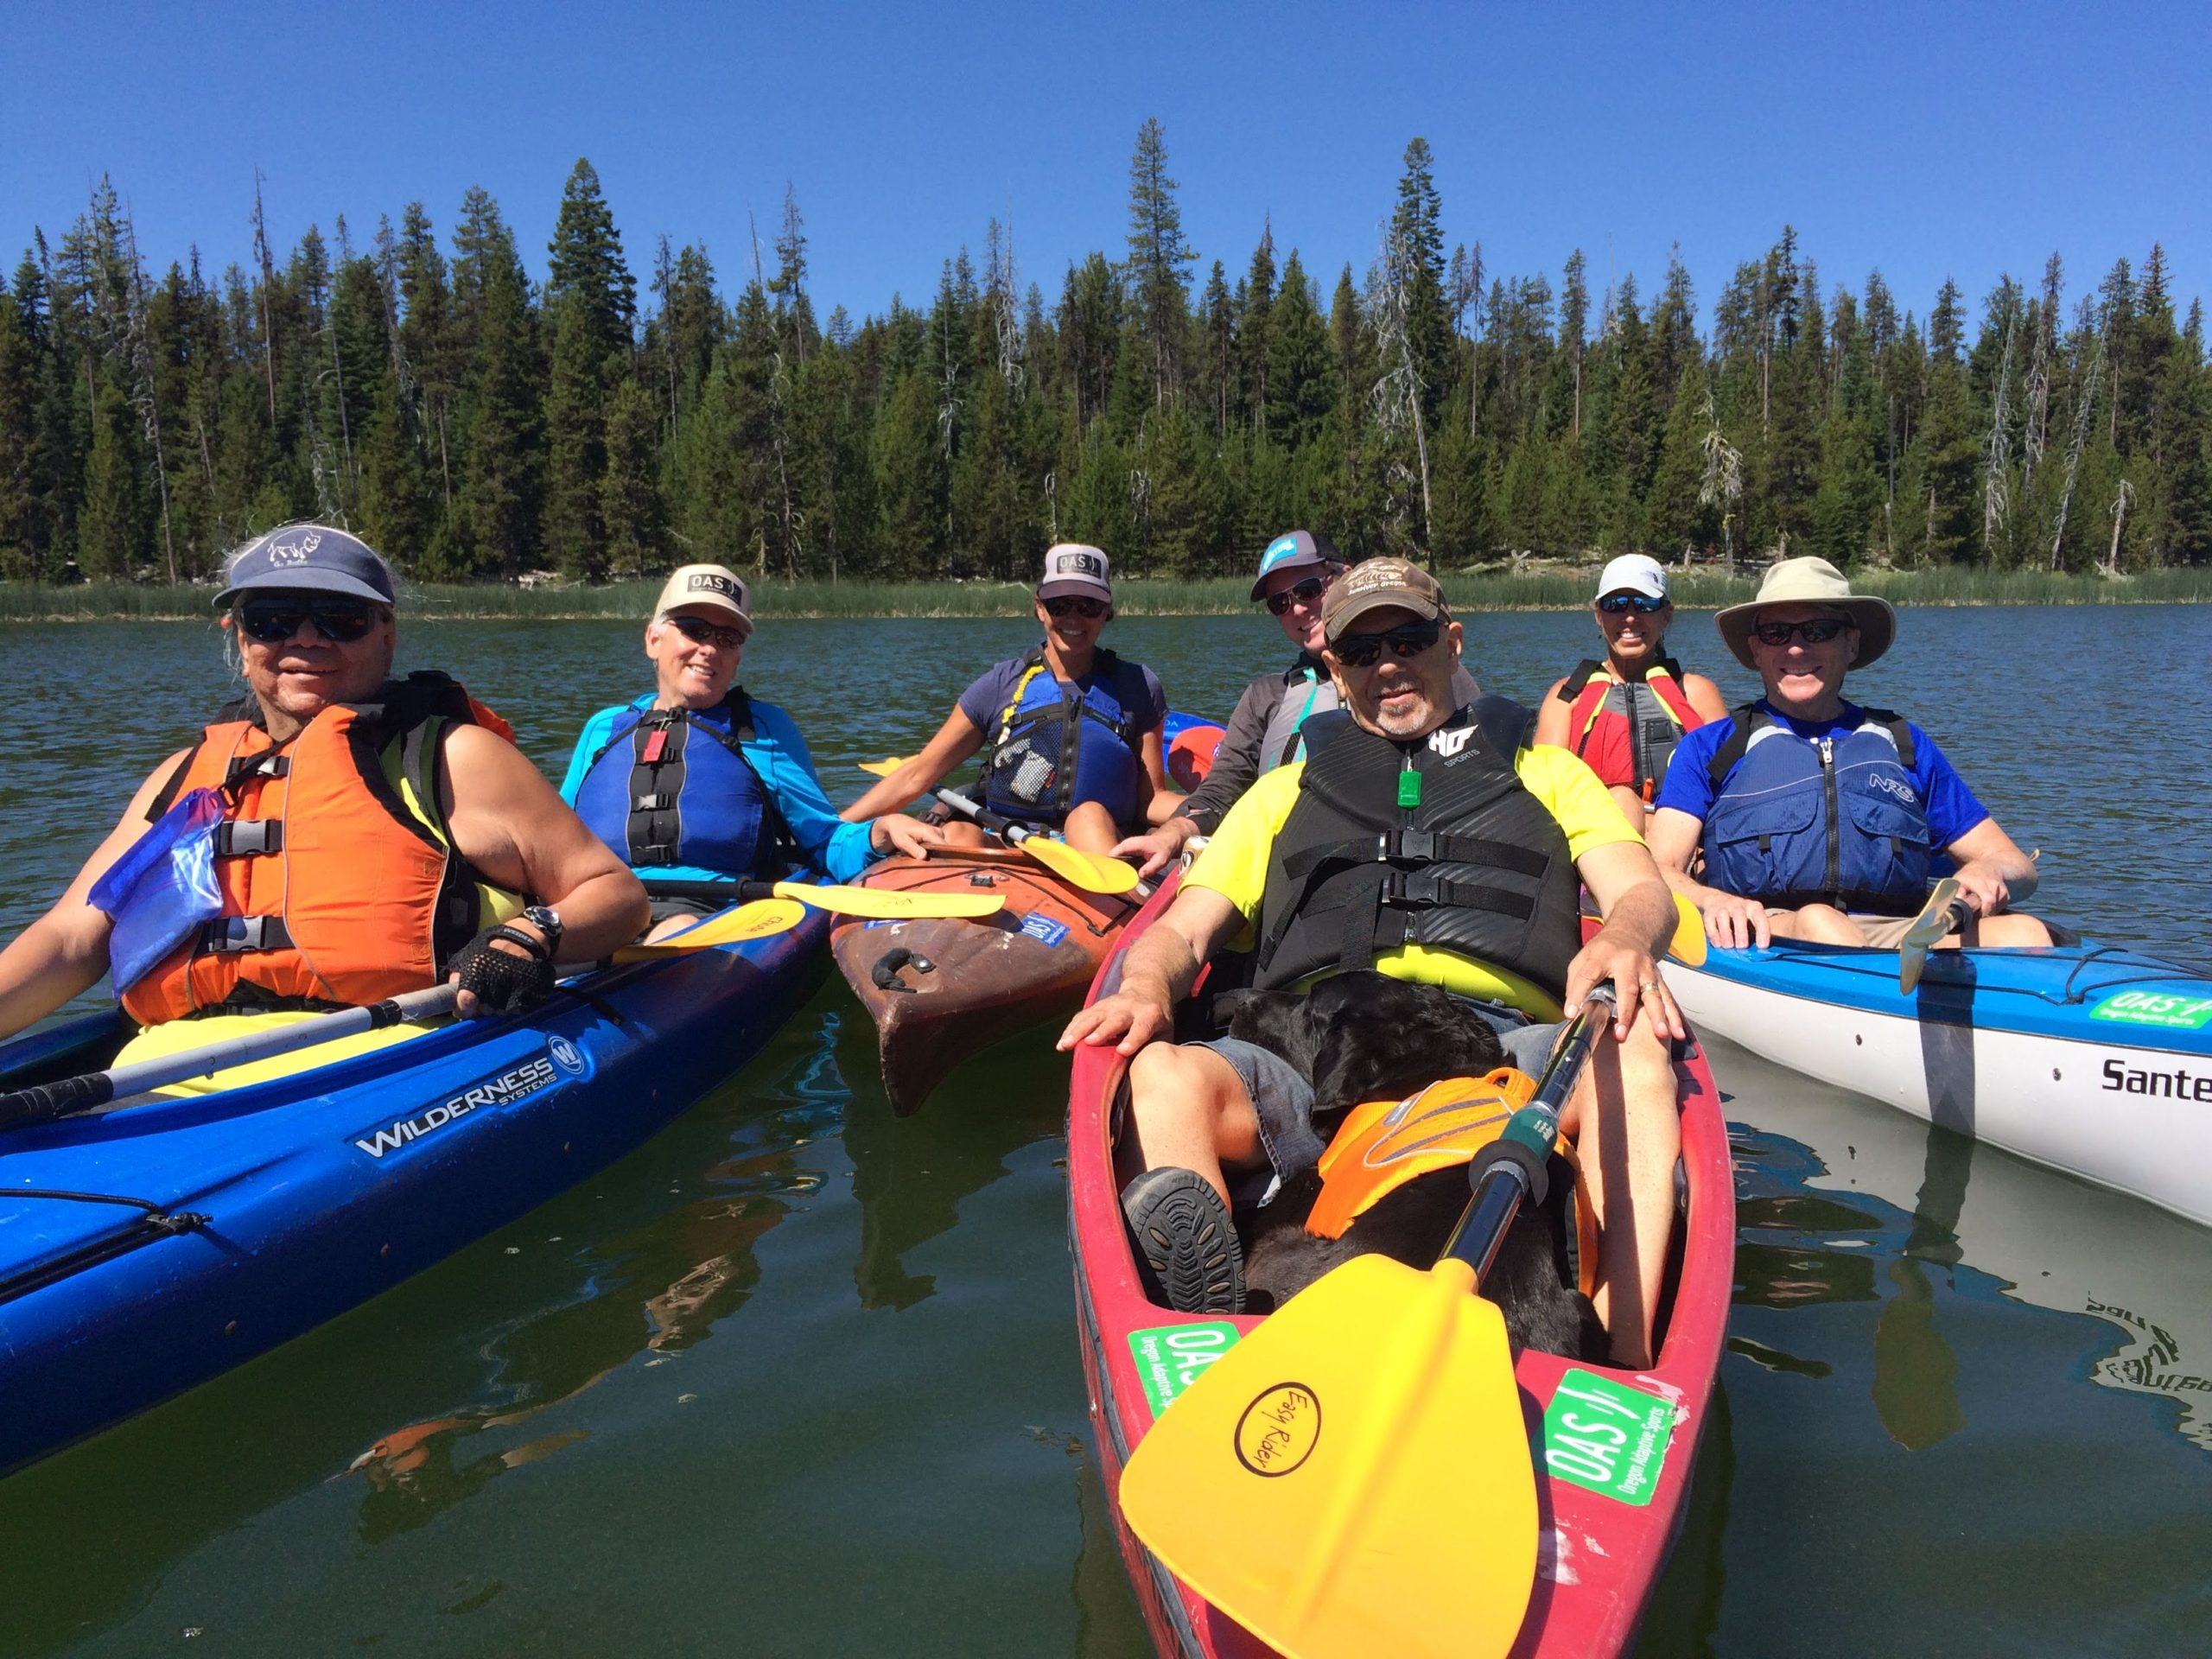 group of folks in kayaks on sparks lake grouped together holding onto each other's boats and smiling for photo